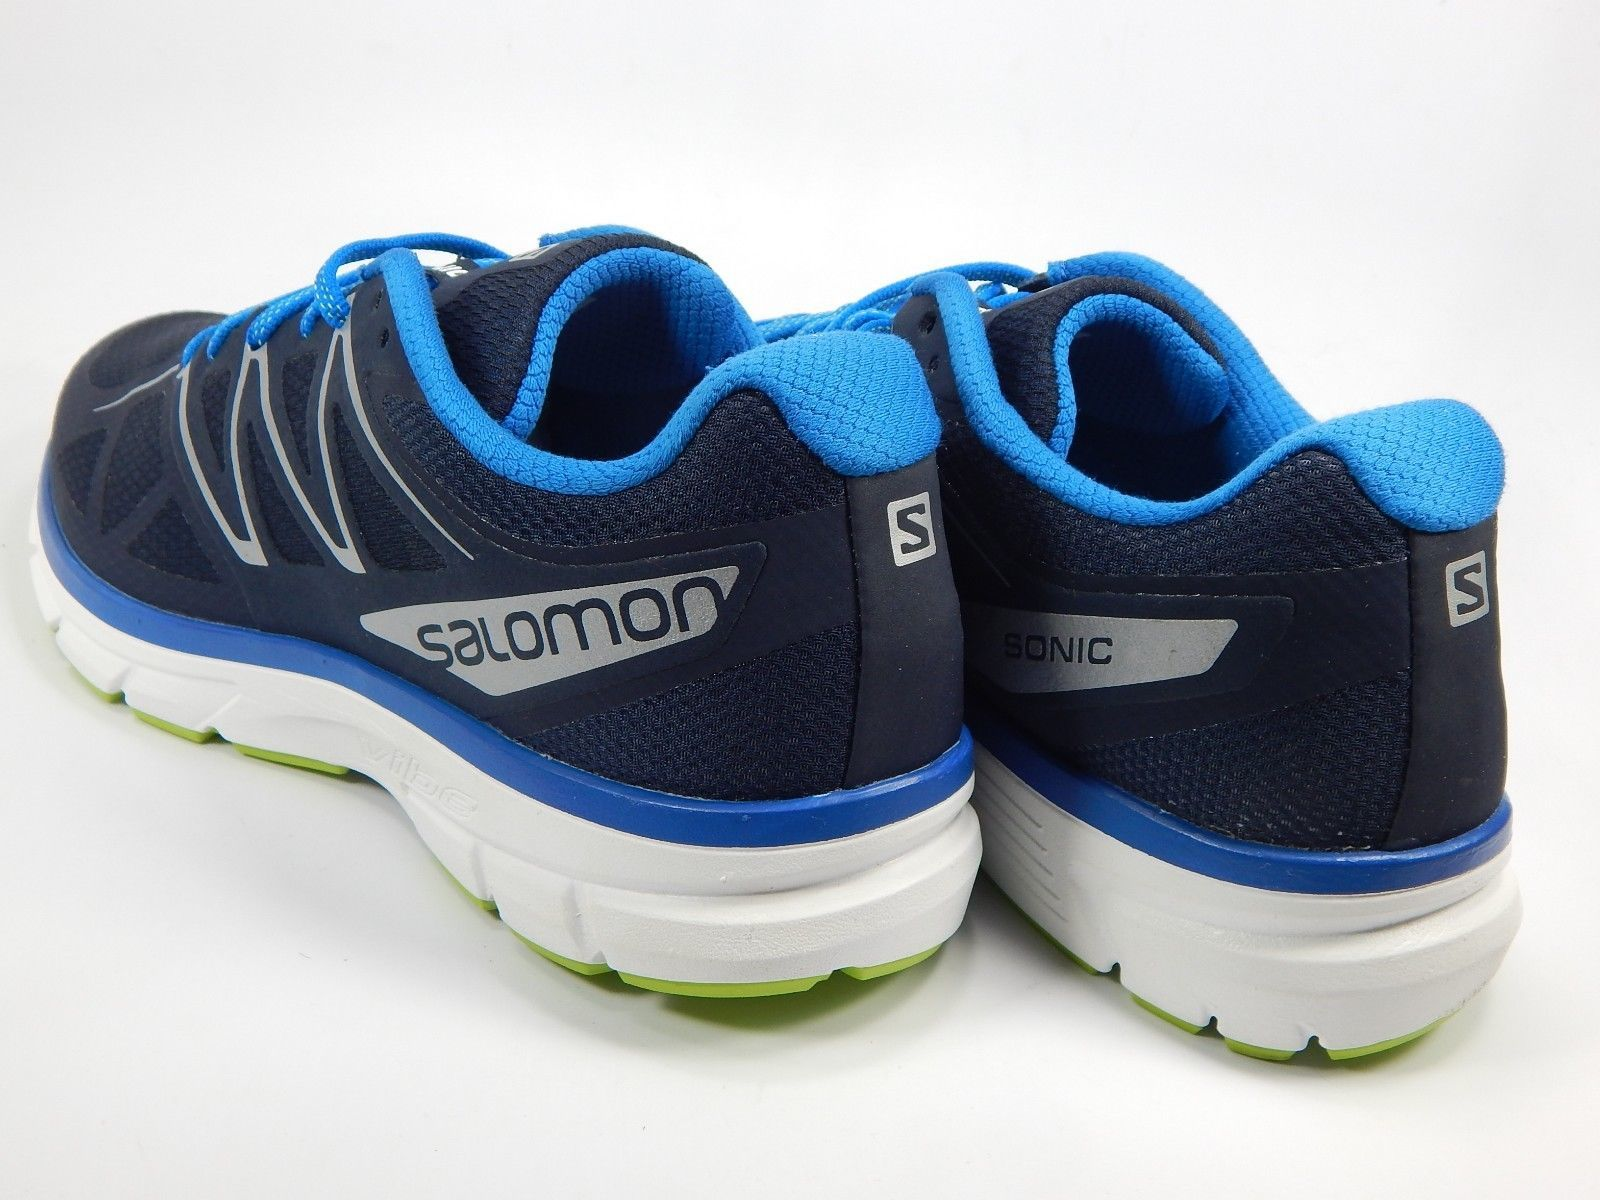 MISMATCH Salomon Sonic Men's Running Shoes Size 8.5 M (D) Left & 9 M (D)Right